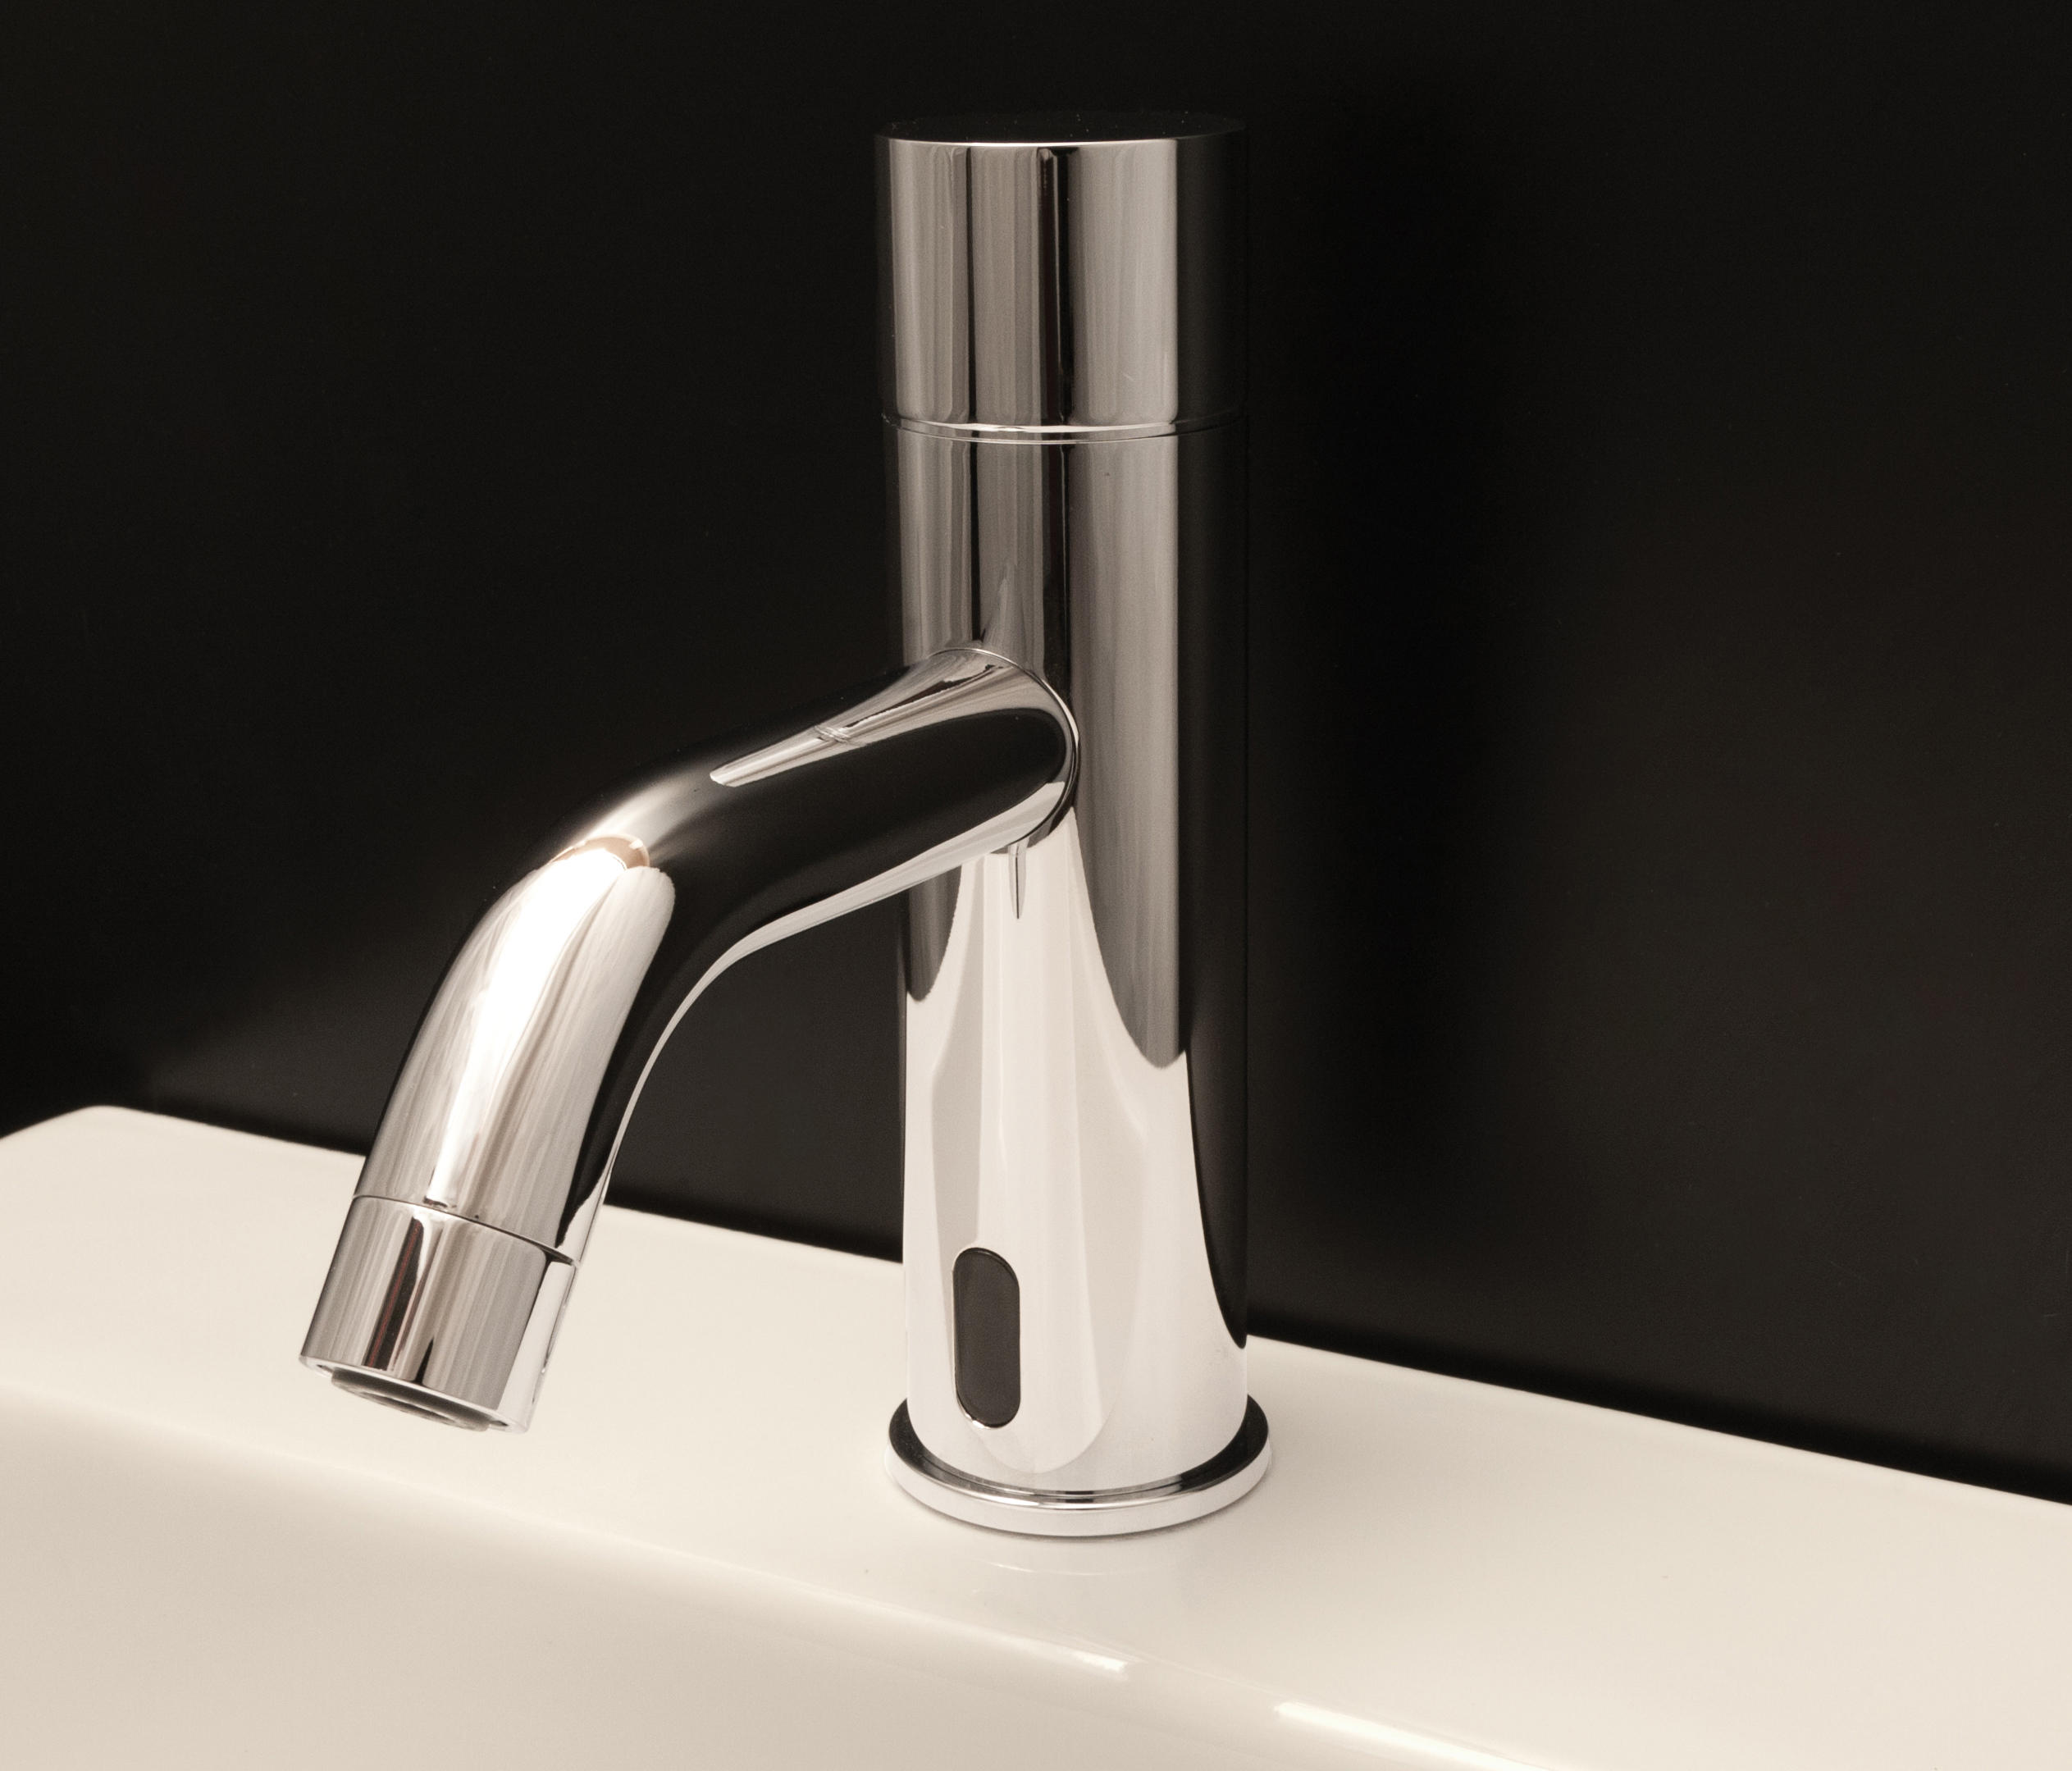 ZOOM FAUCET EX010A - Wash basin taps from Lacava | Architonic